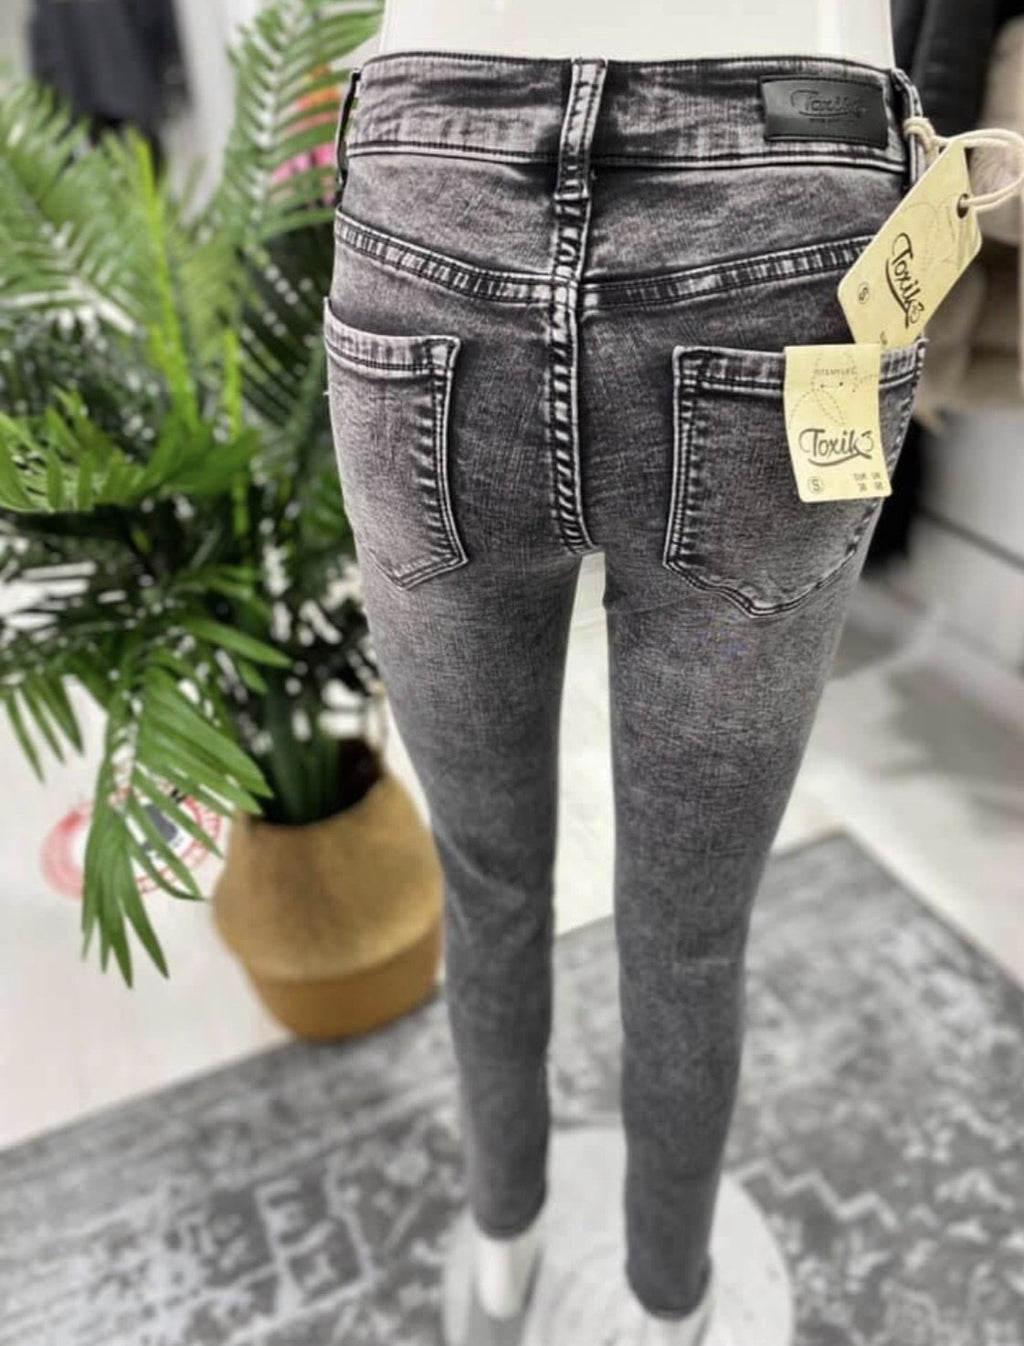 Toxik Jeans - Skinny - Grey Acid Wash - Mid Rise - Pure Ladies Boutique